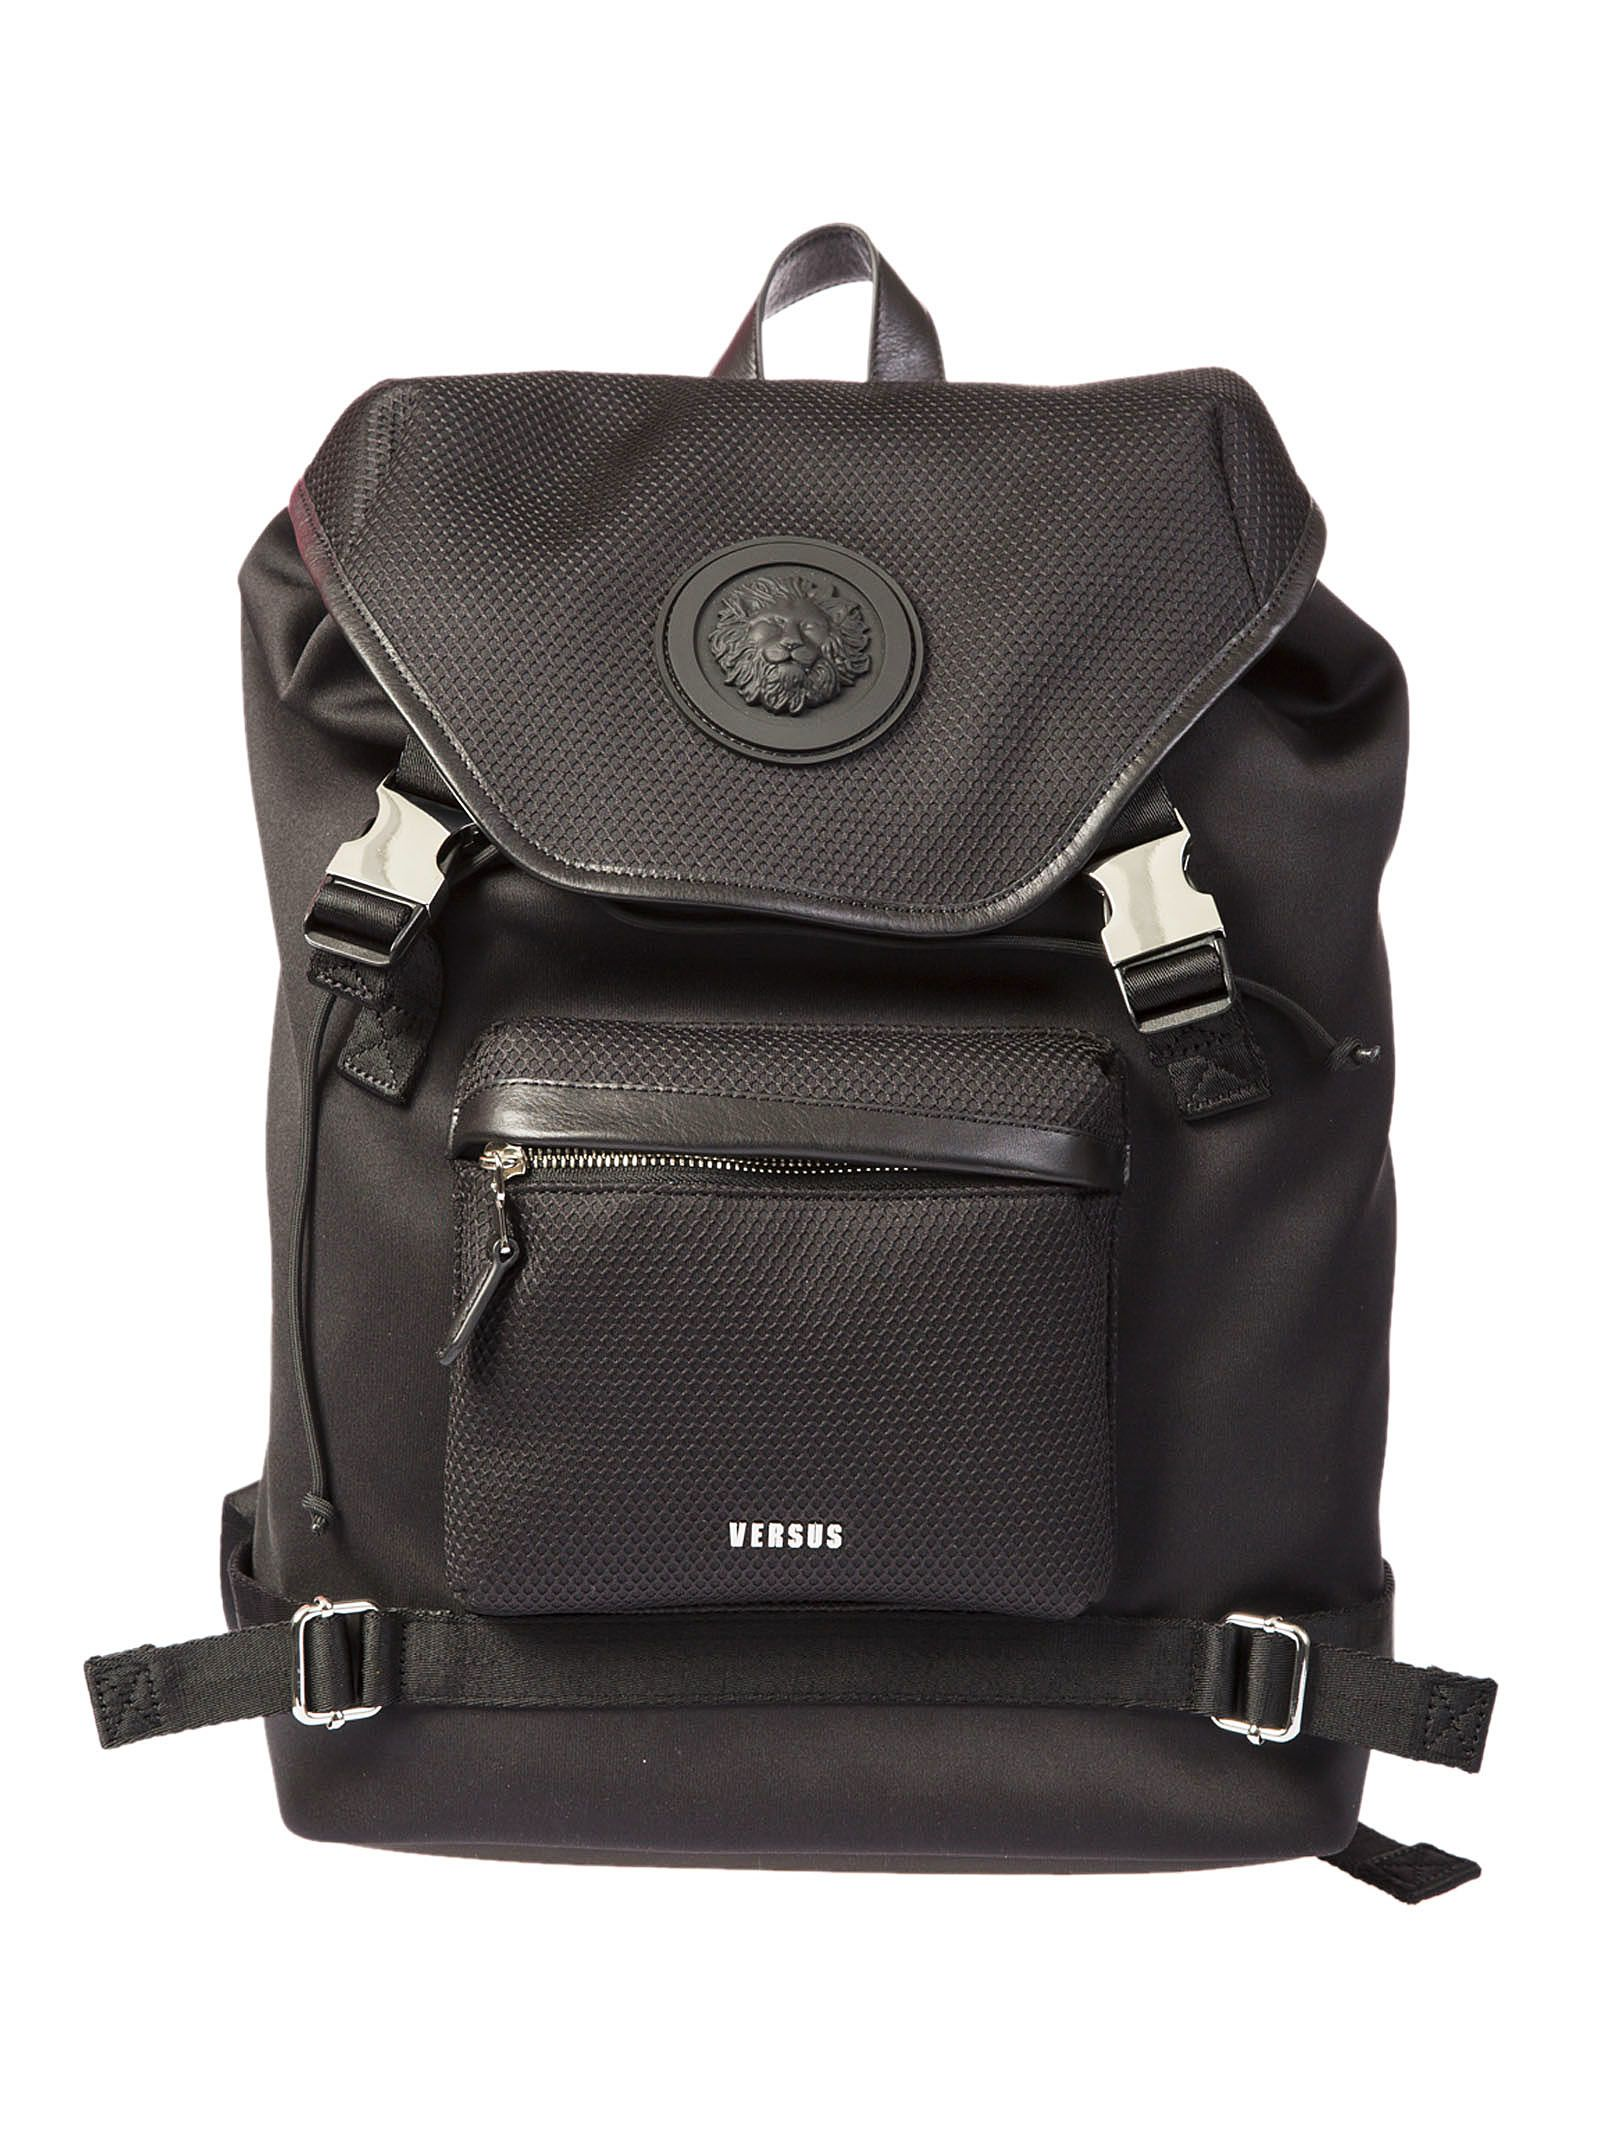 Versus Buckled Backpack